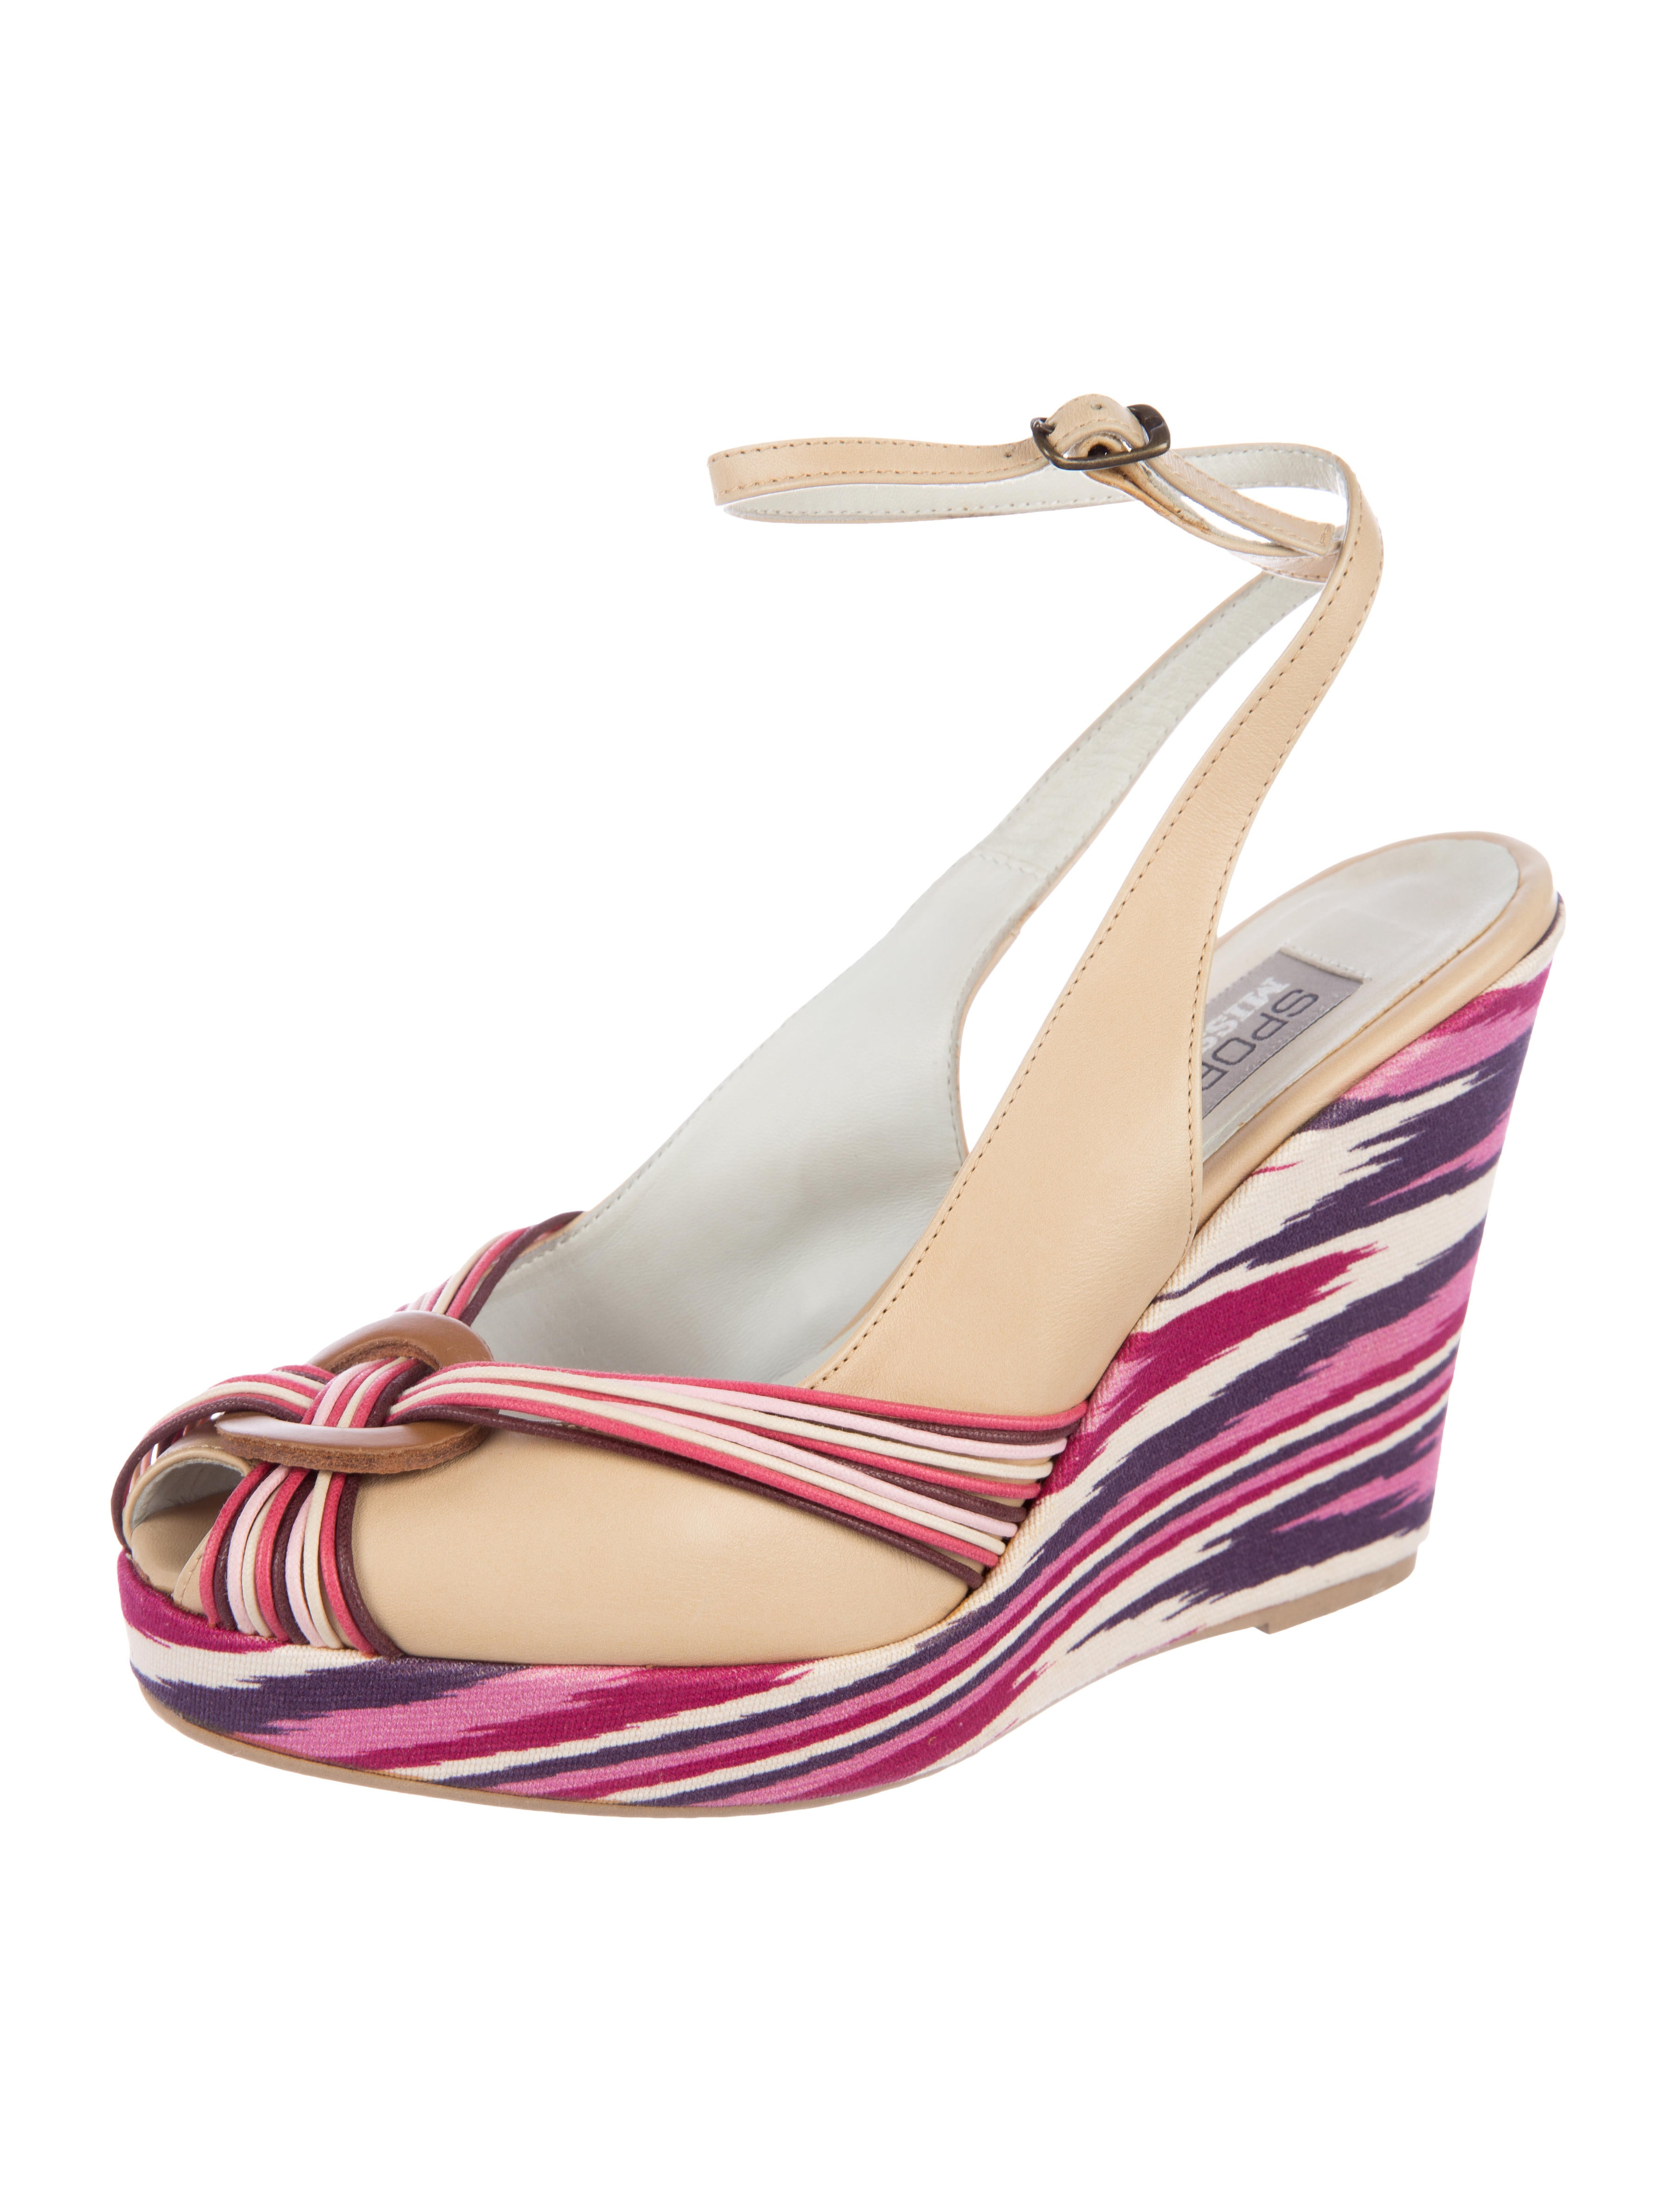 under $60 for sale Missoni Sport Peep-Toe Wedge Pumps outlet visit new free shipping huge surprise footaction for sale vb3nNgOj